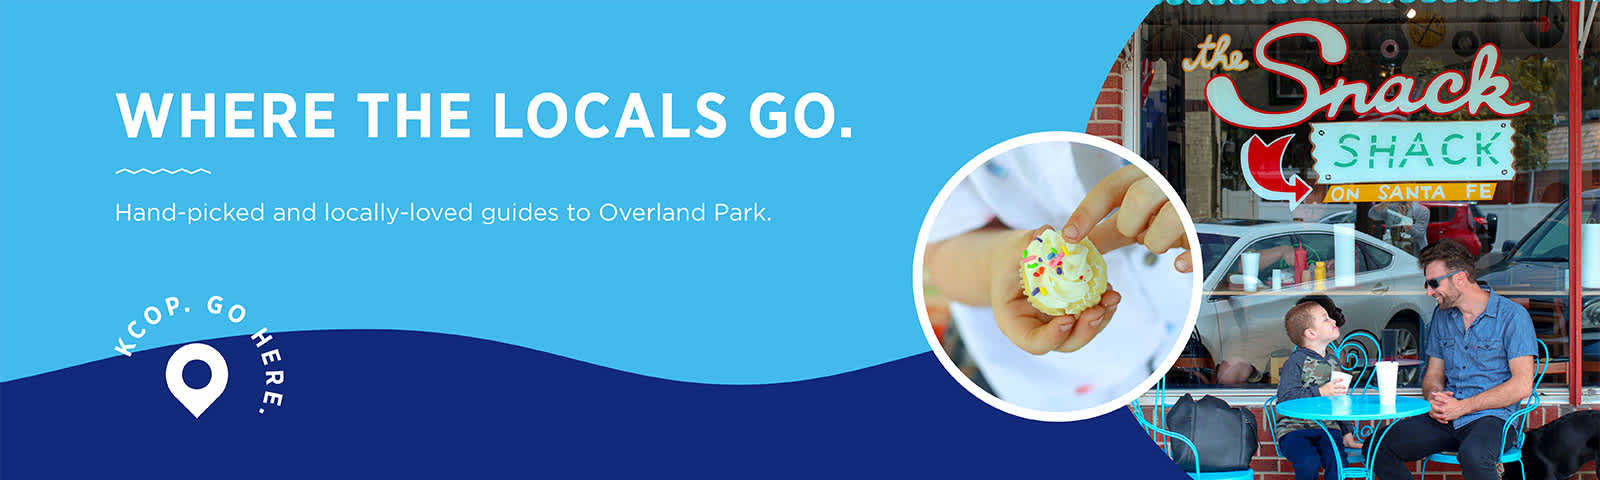 where-the-locals-go-overland-park